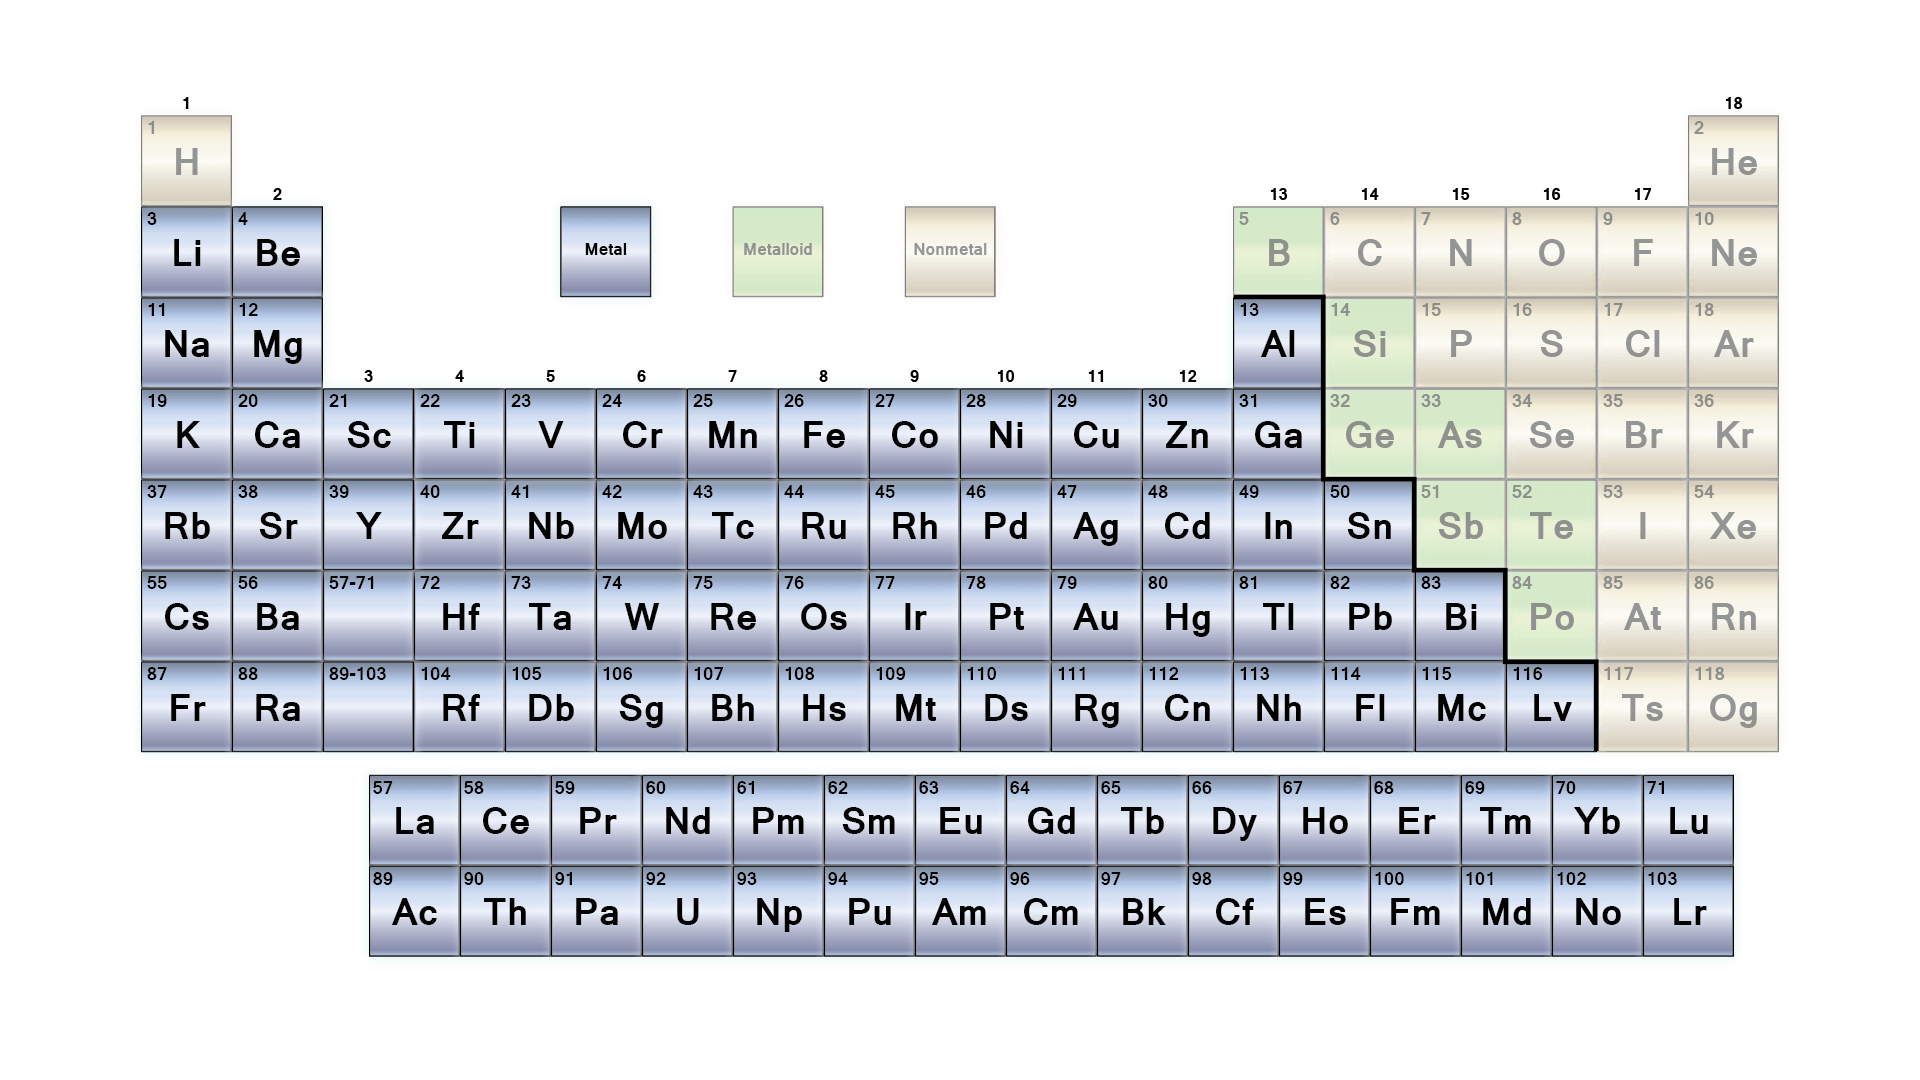 List Of Heavy Metals In Periodic Table